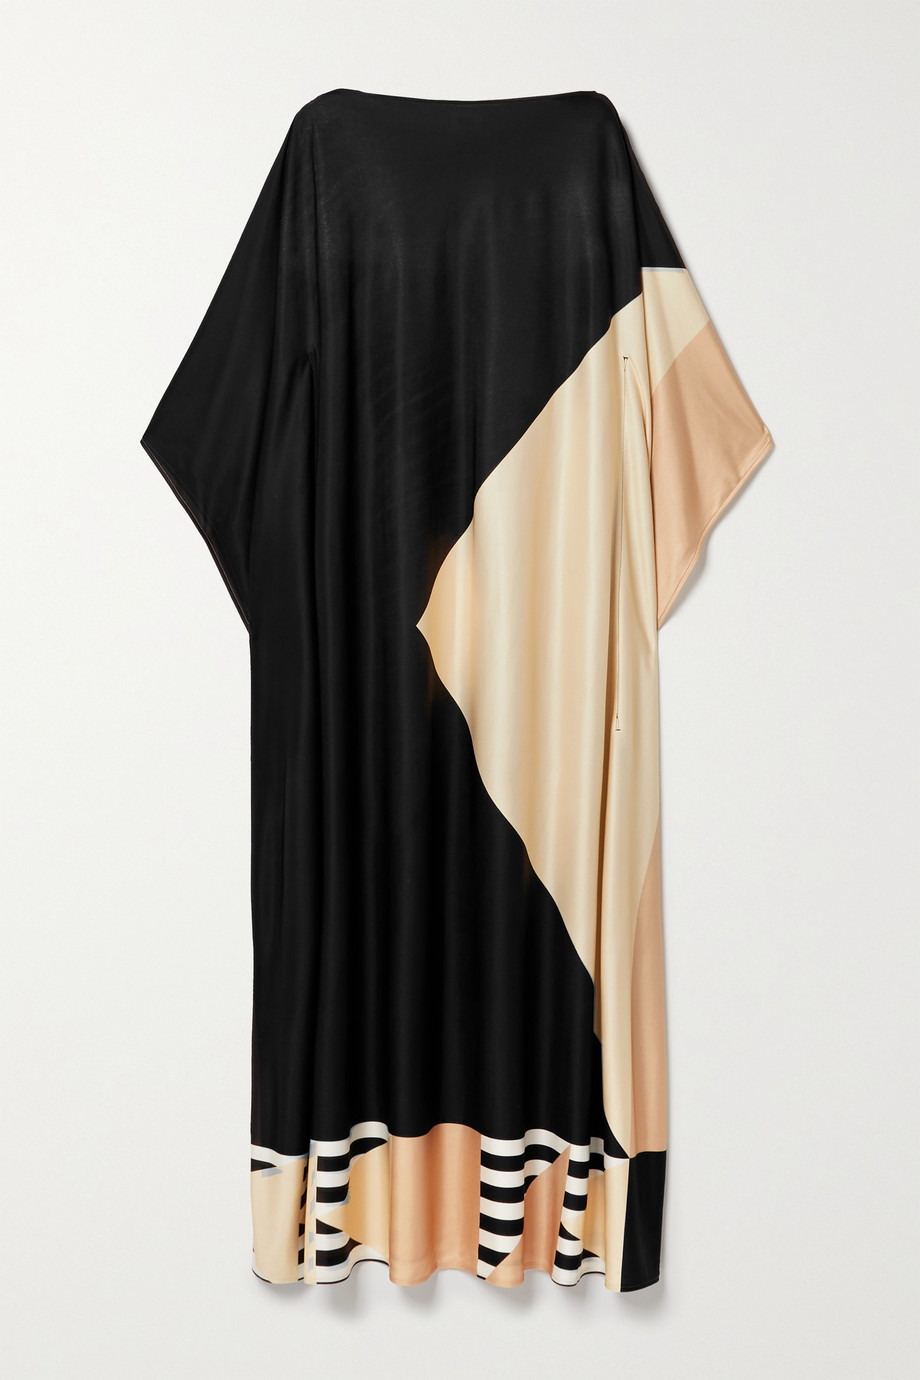 Louisa Parris + NET SUSTAIN Etta printed silk-jersey maxi dress